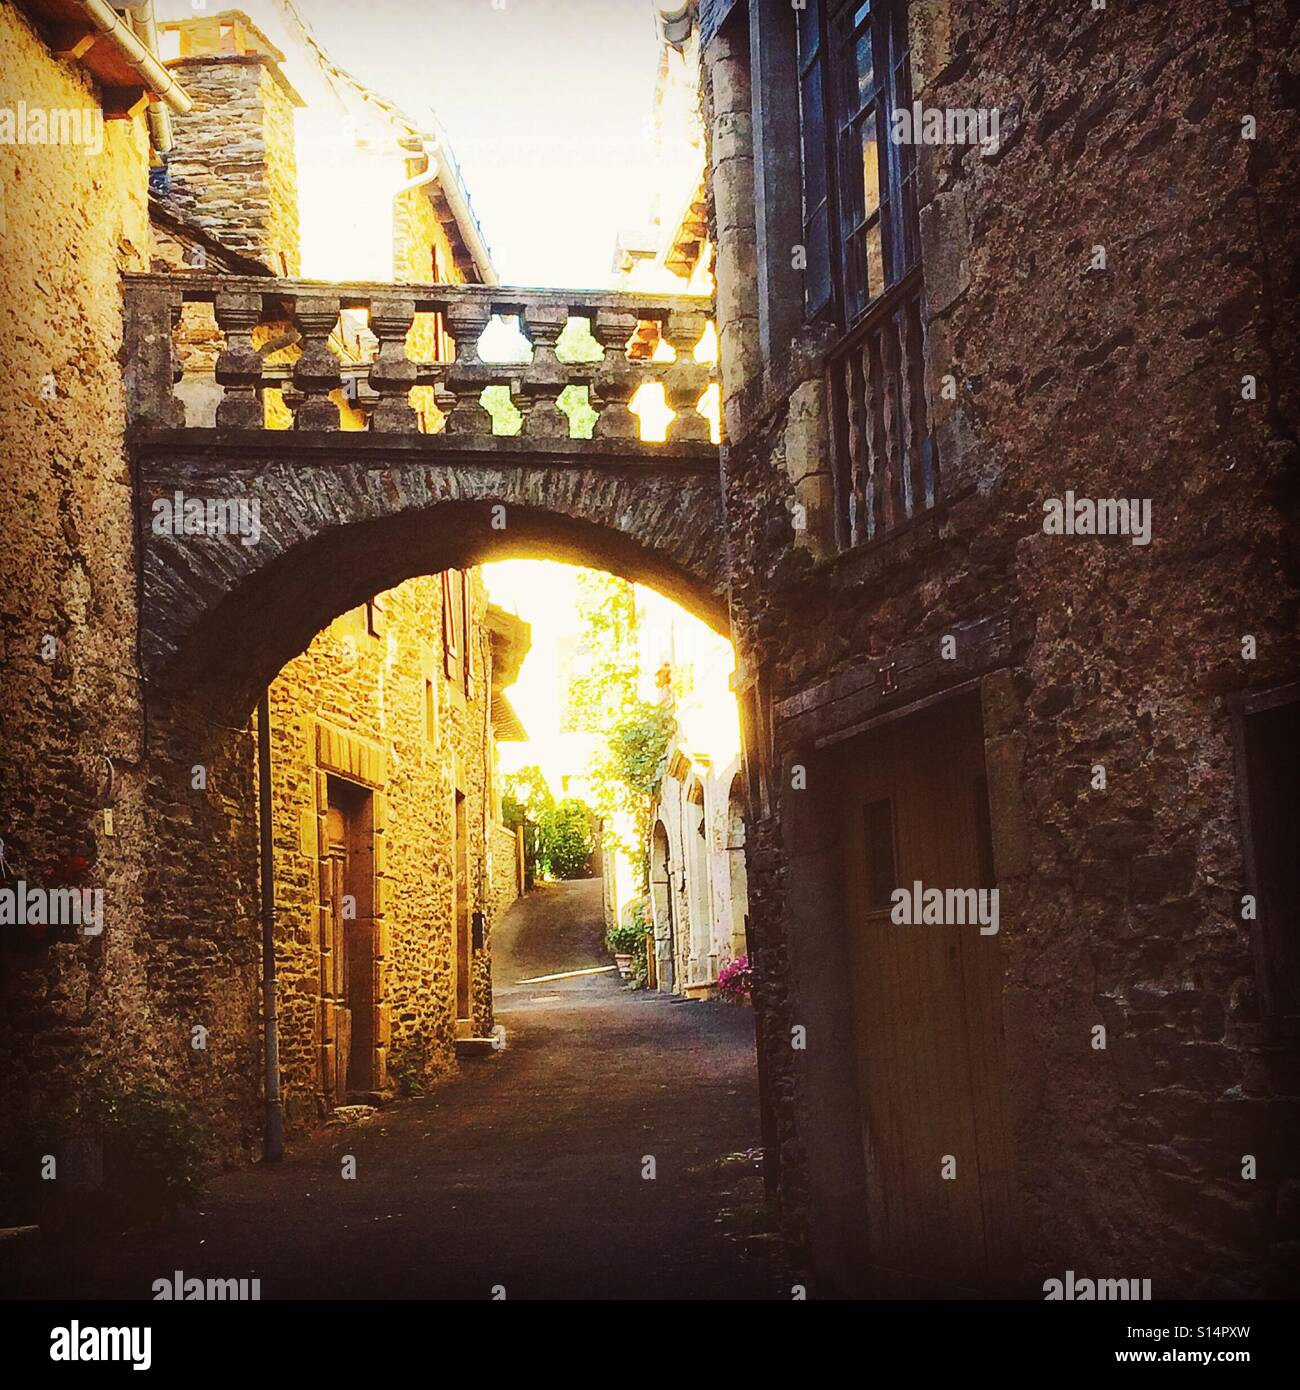 Ancient bridge in a narrow street in Estaing,France - Stock Image